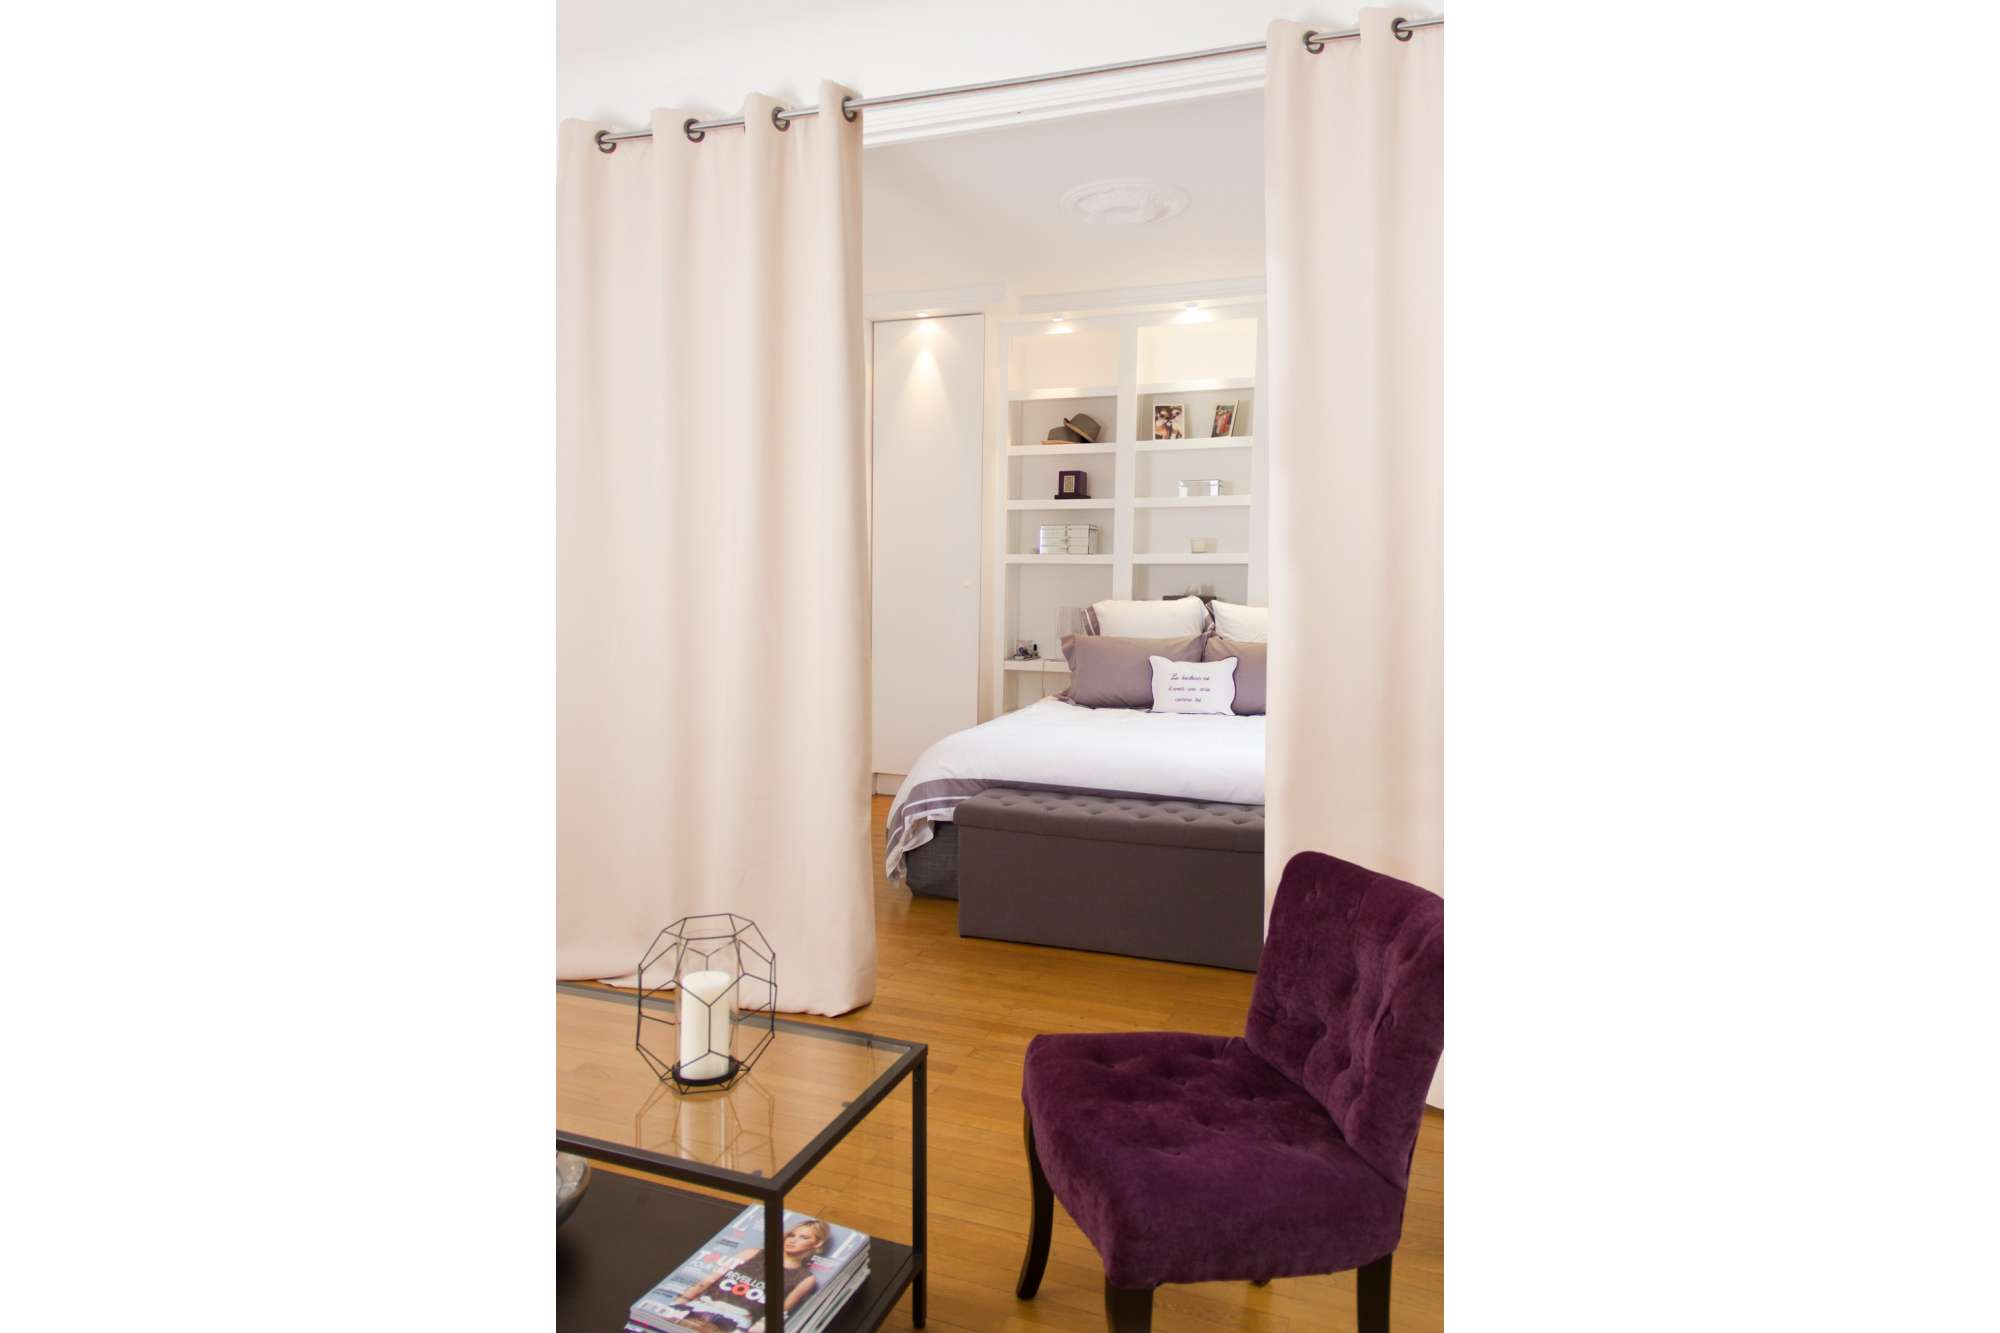 Room Divider Curtains | Room Divider Curtain Track | Room Separator Curtain